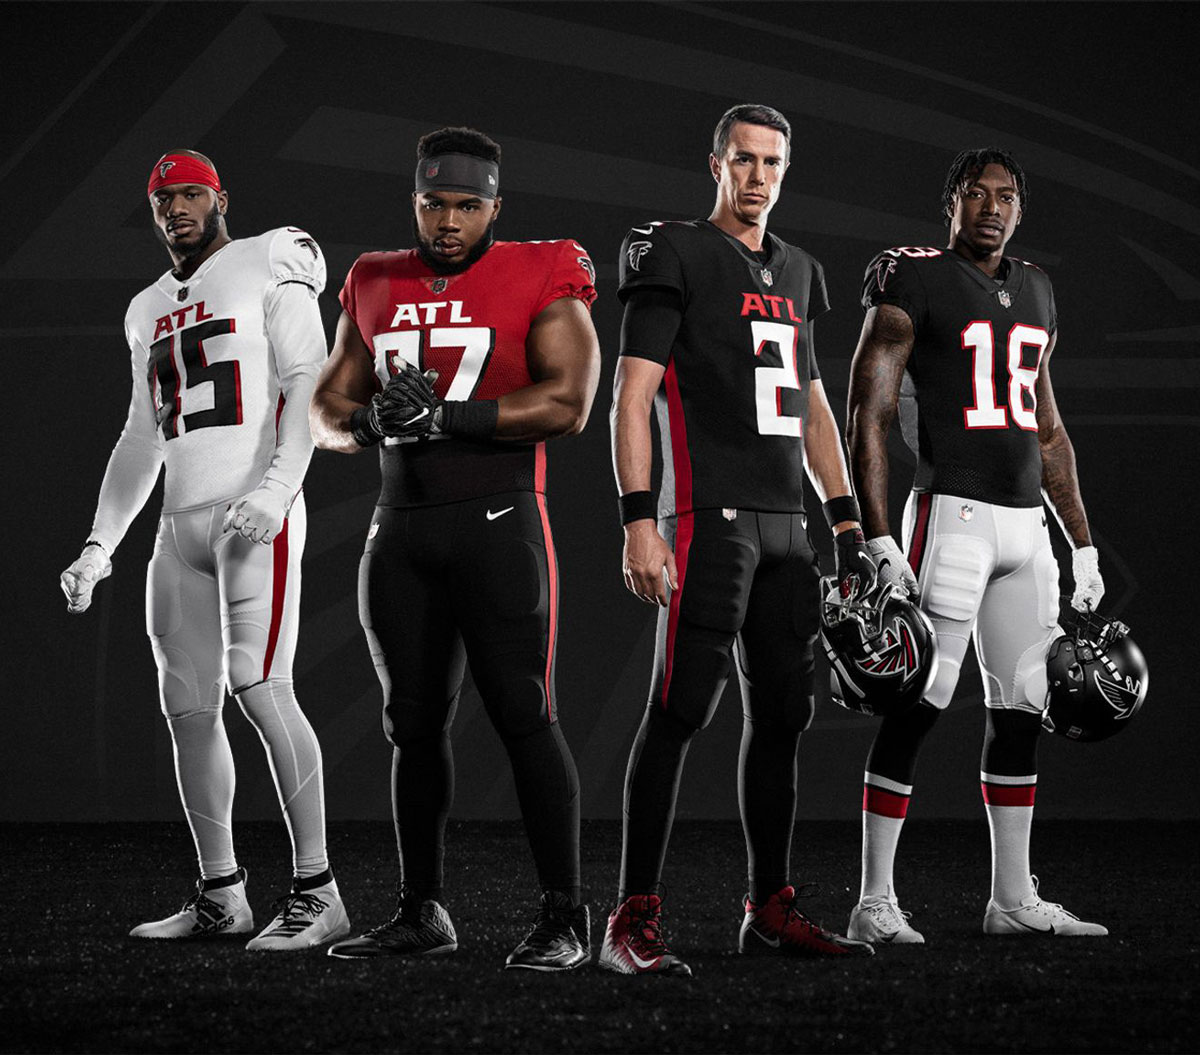 brief look at Atlanta Falcons uniforms